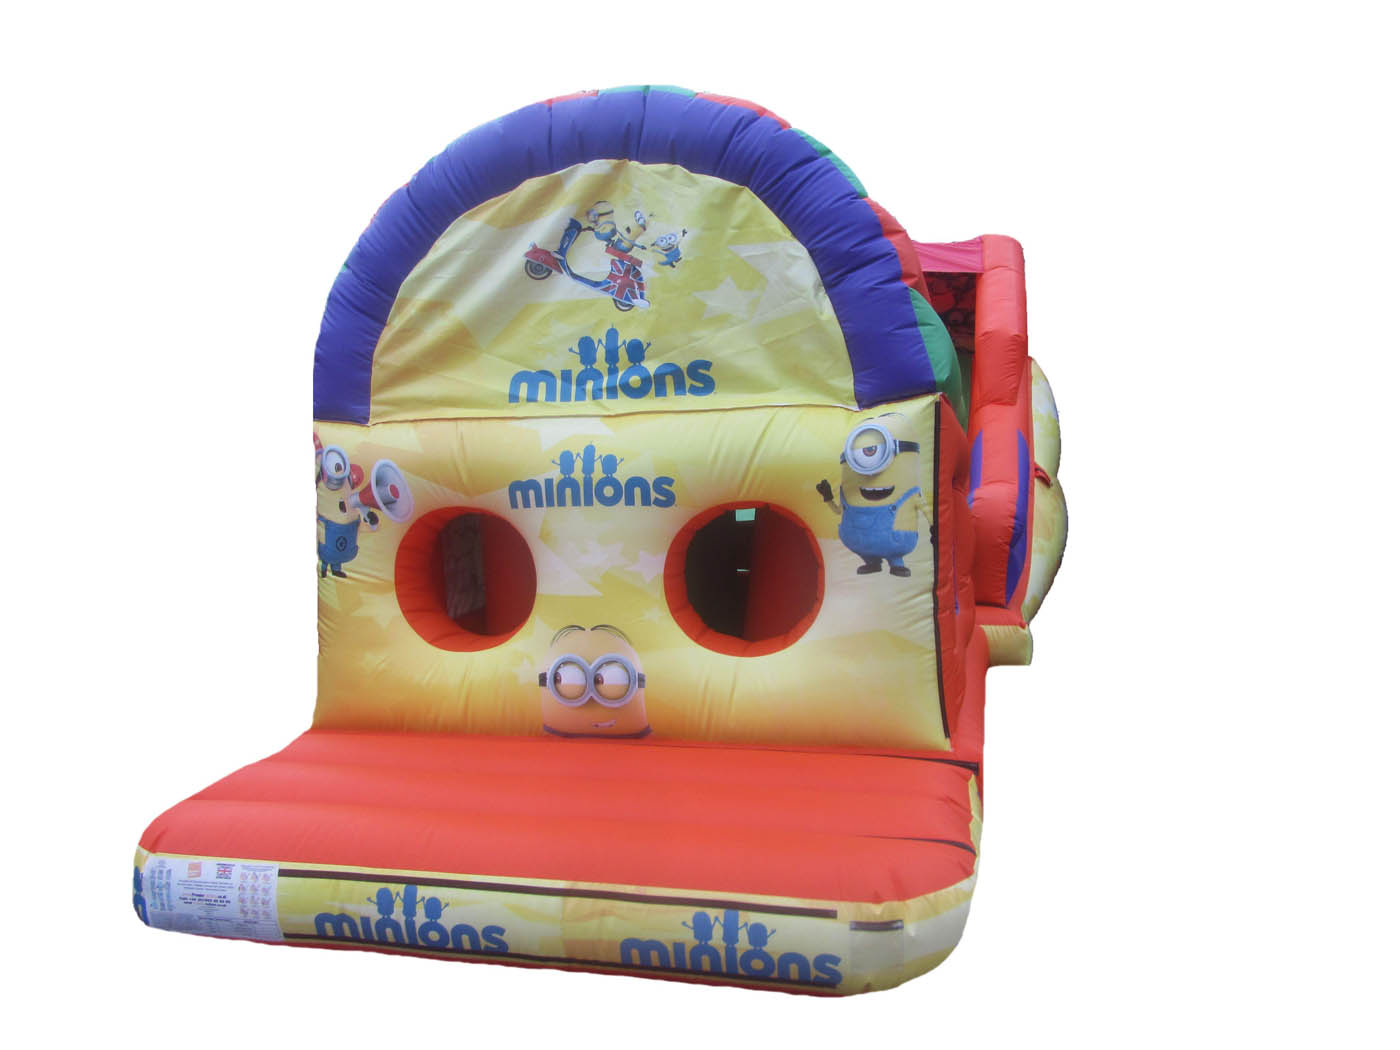 Inflatable Bouncy Obstacle Course, UK Bouncy Castle Manufacturers